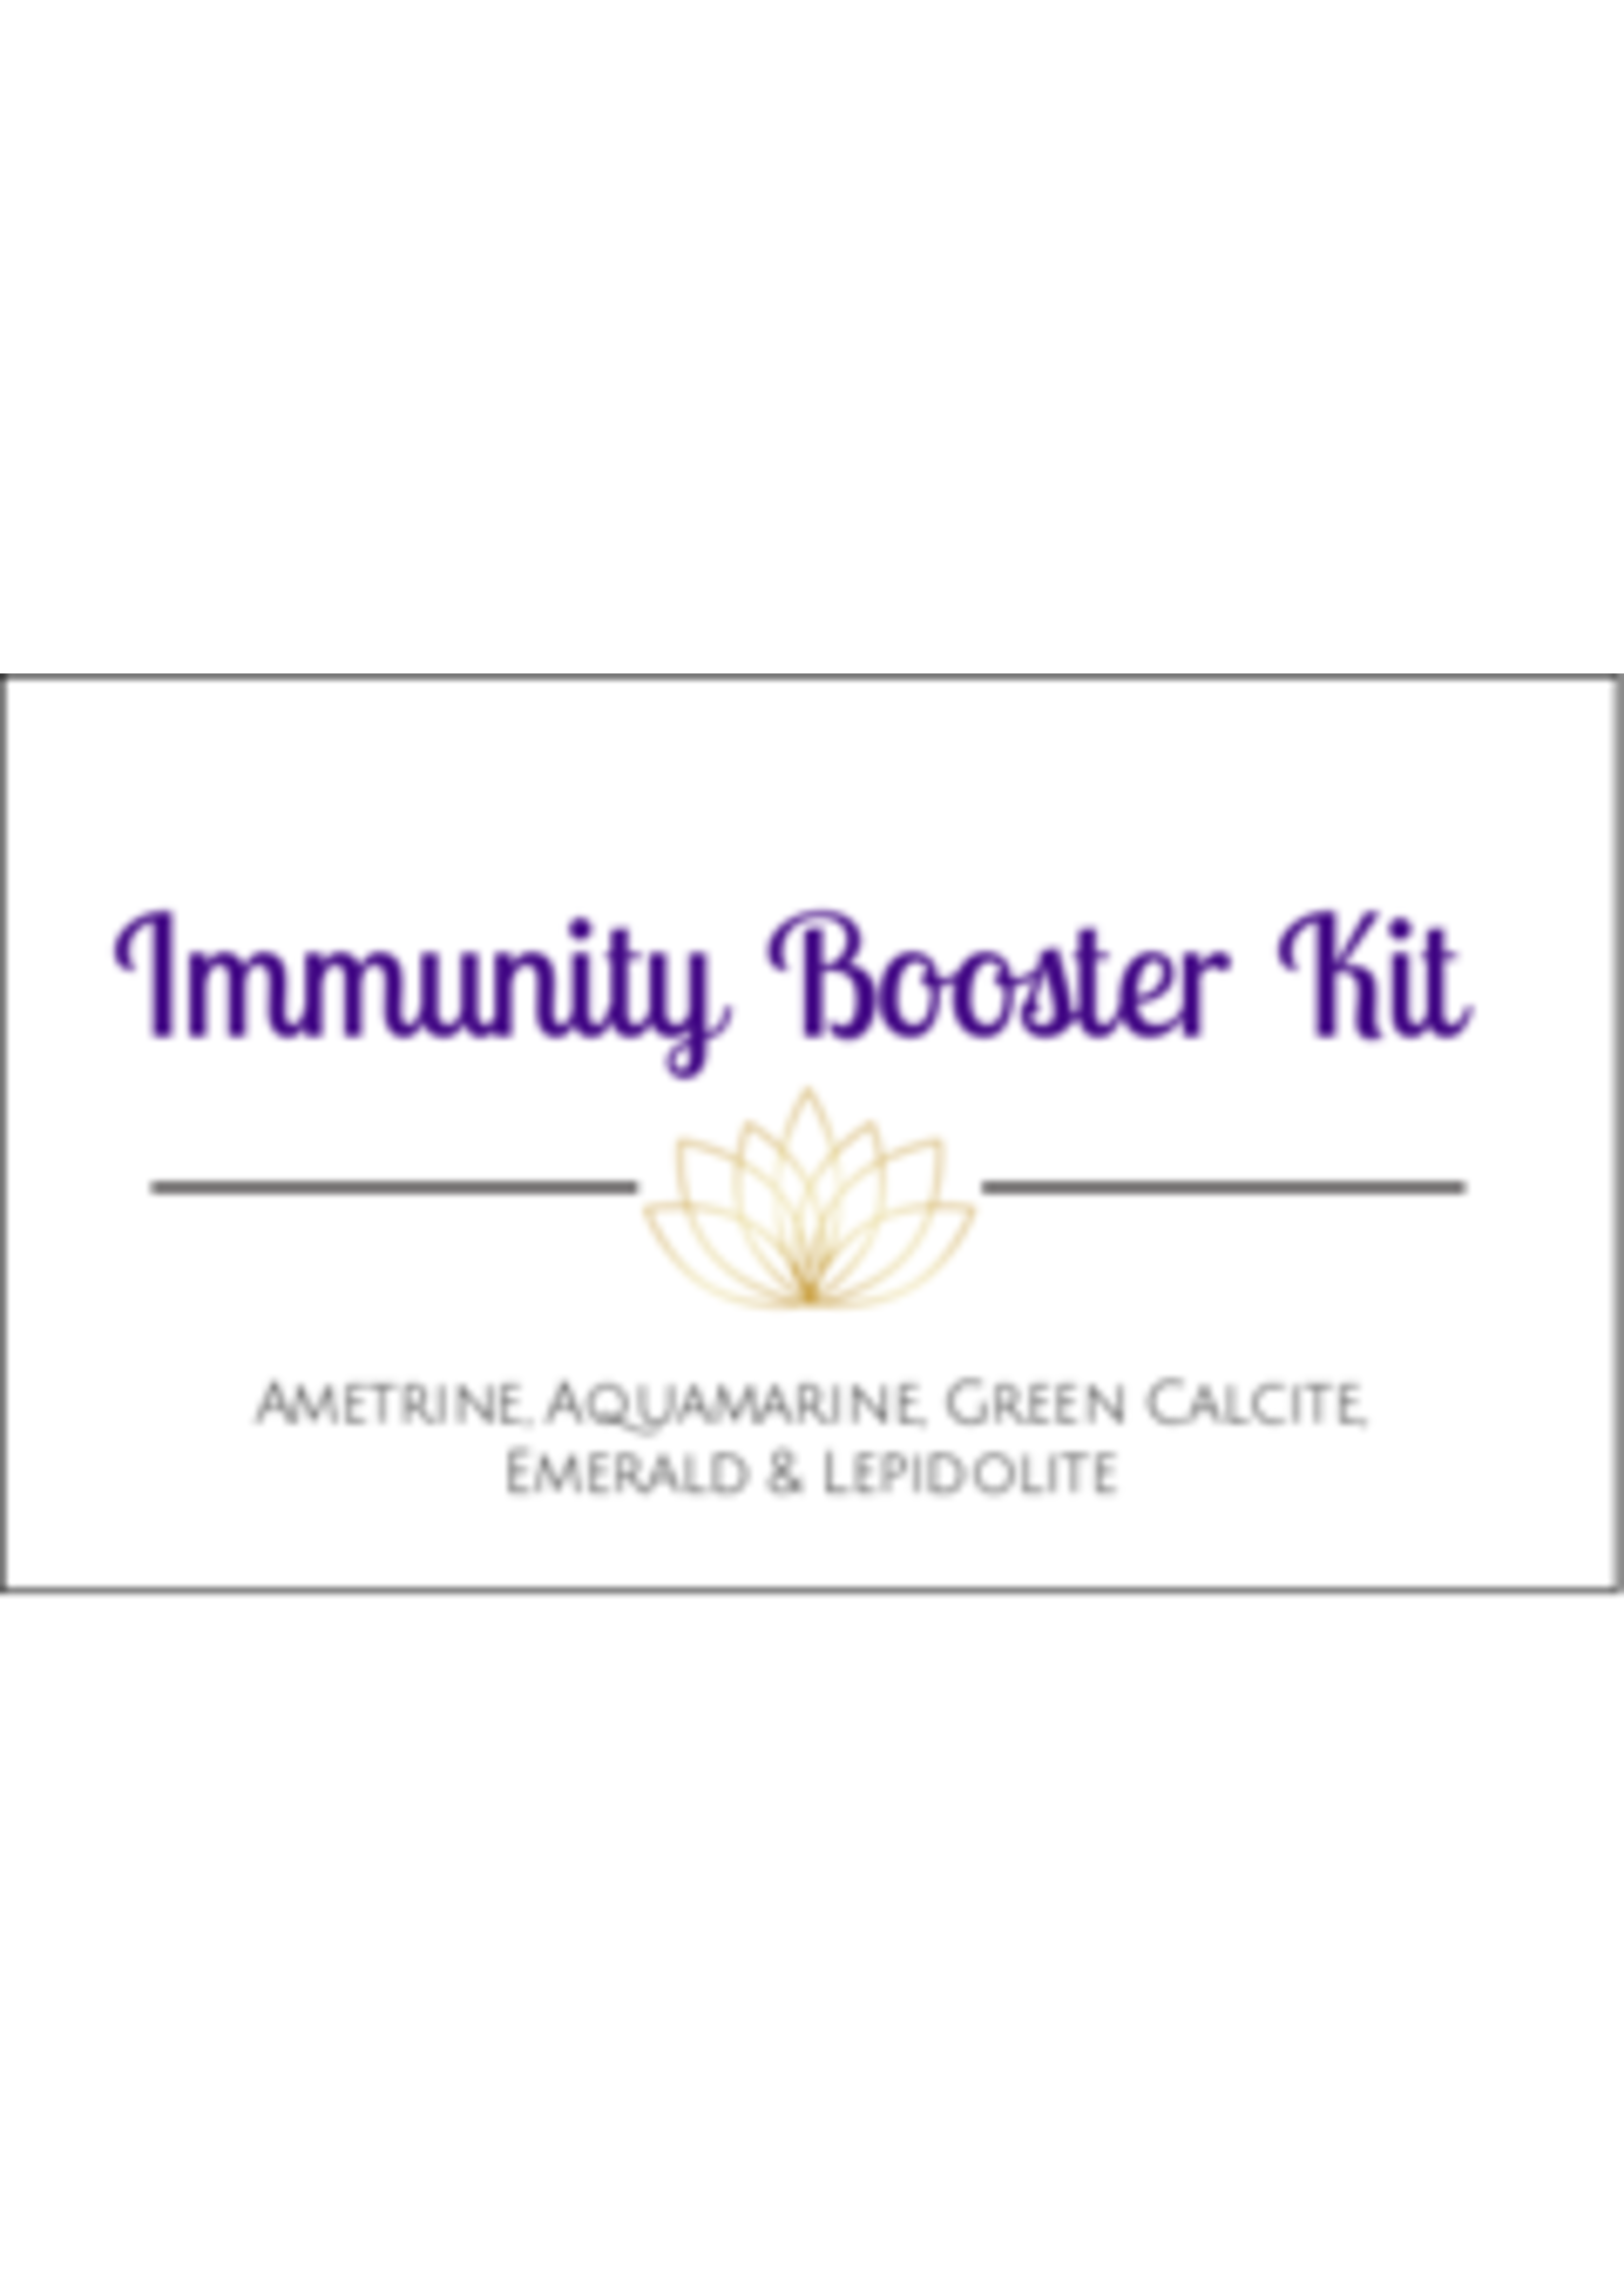 Immunity Booster Crystal Kit Cards - Box of 100